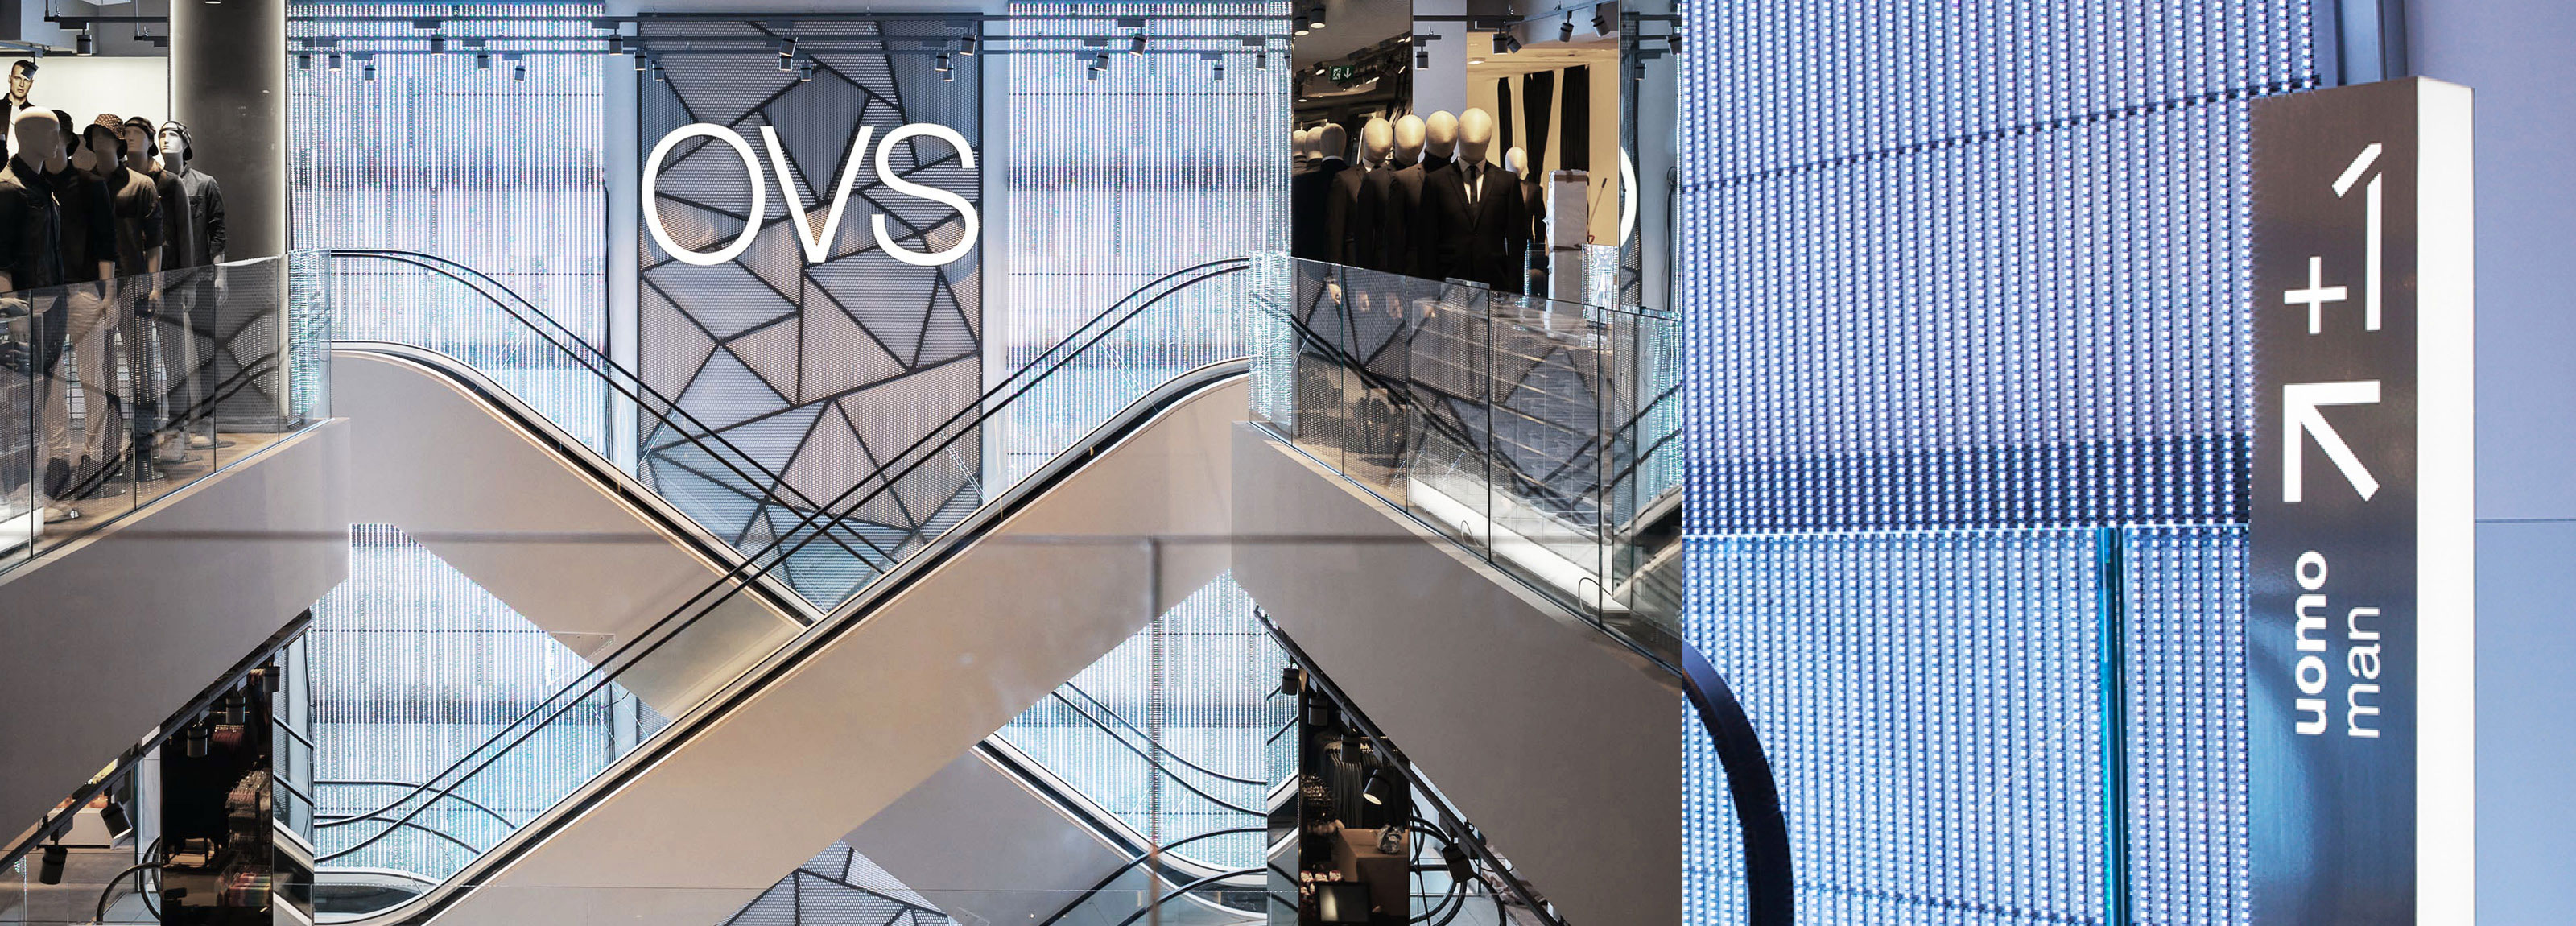 OVS - OVS<br> Wayfinding system for Milan Store